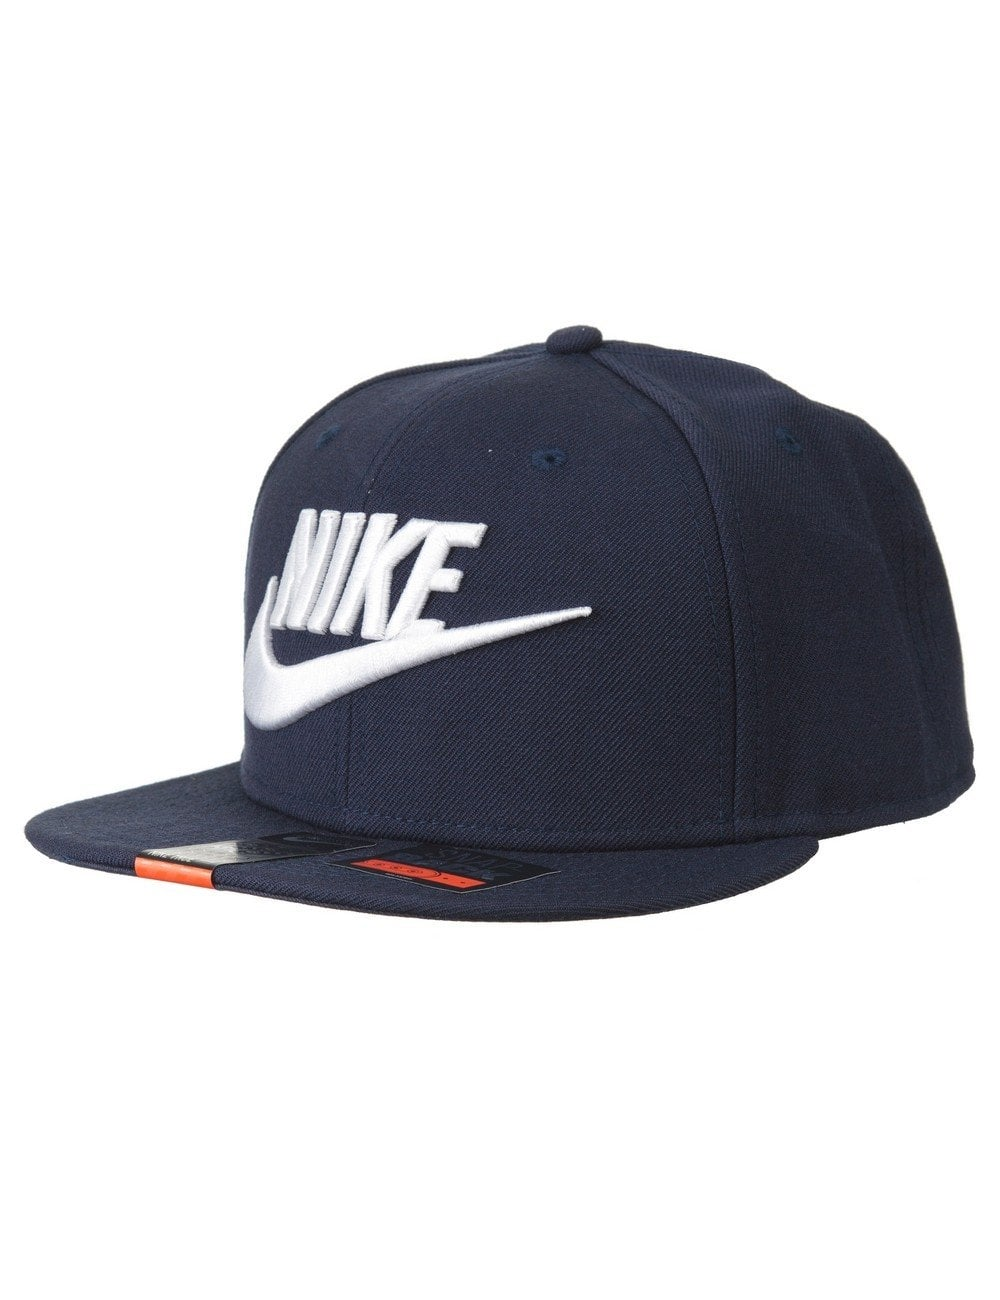 Nike Futura True 2 Snapback Hat - Obsidian - Accessories from Fat ... ad2964d4a94